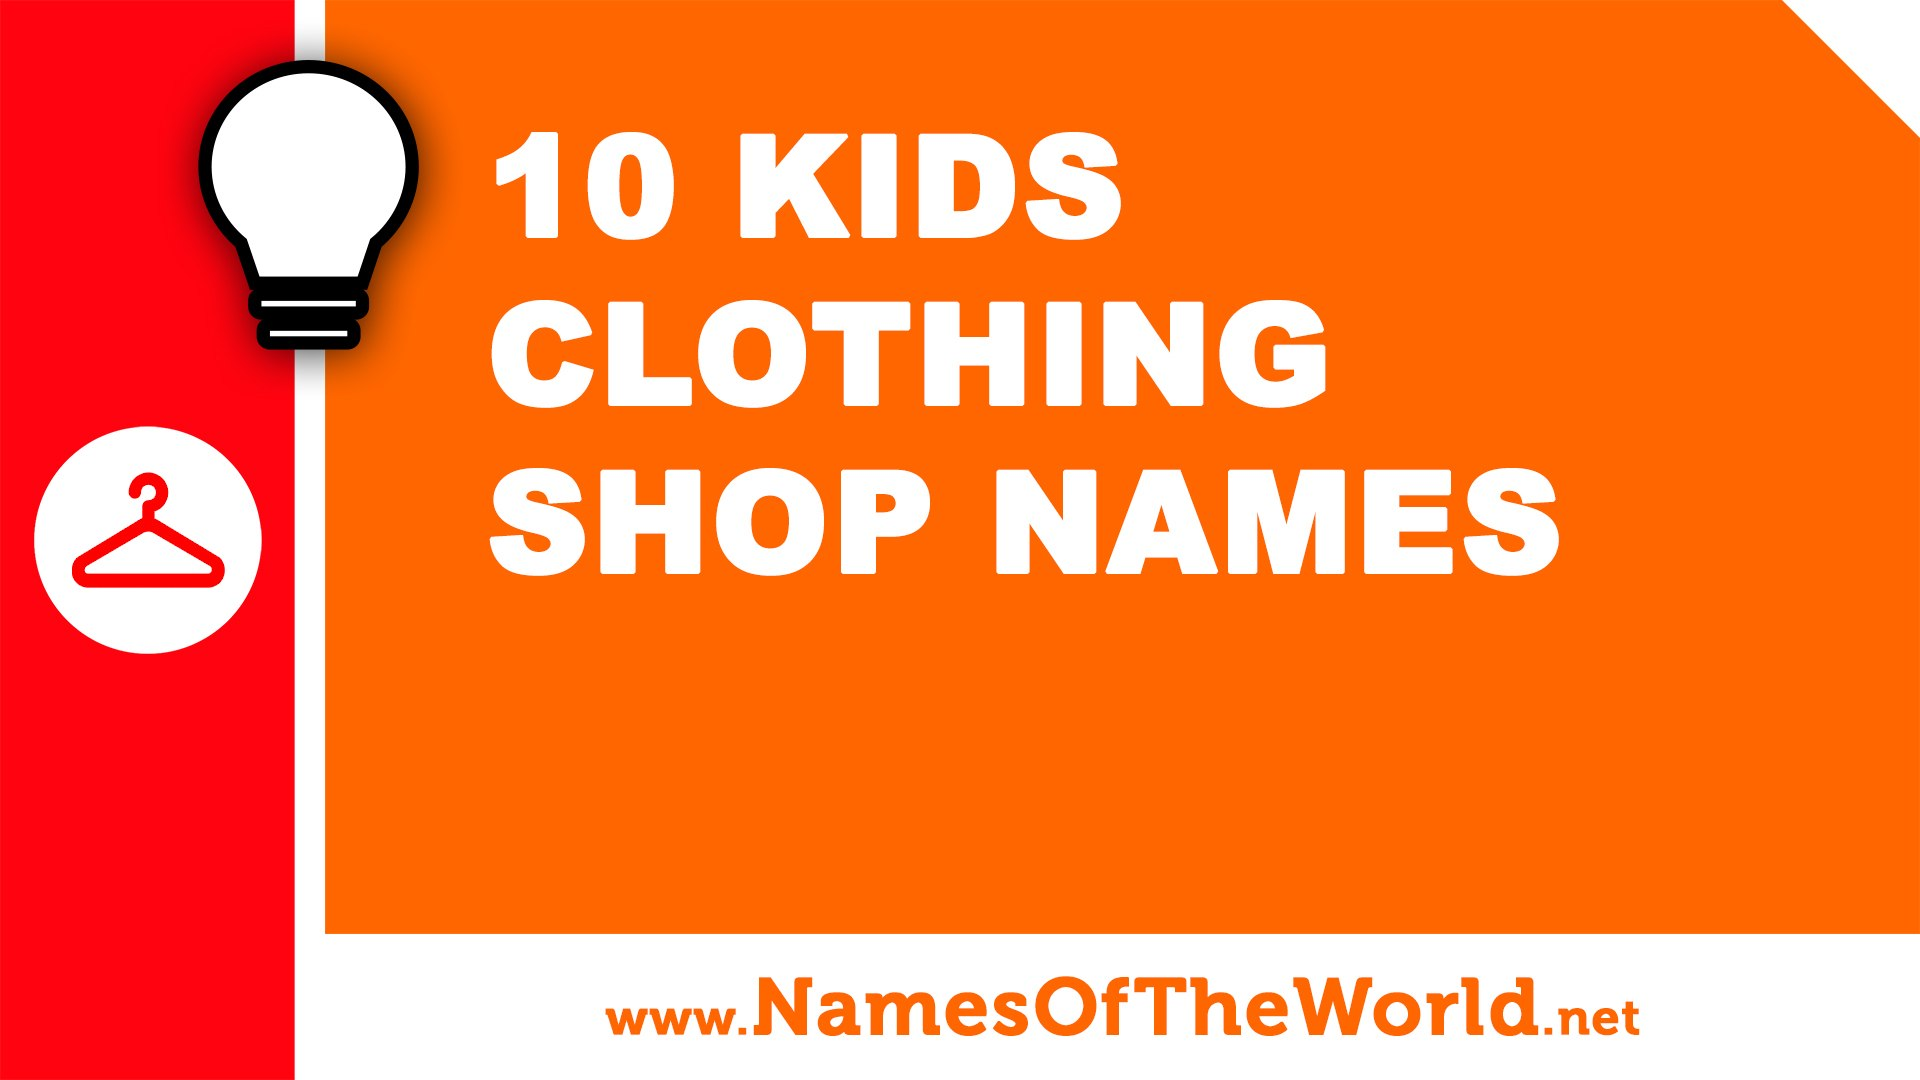 10 kids clothing shops names - the best names for your company -  www namesoftheworld net